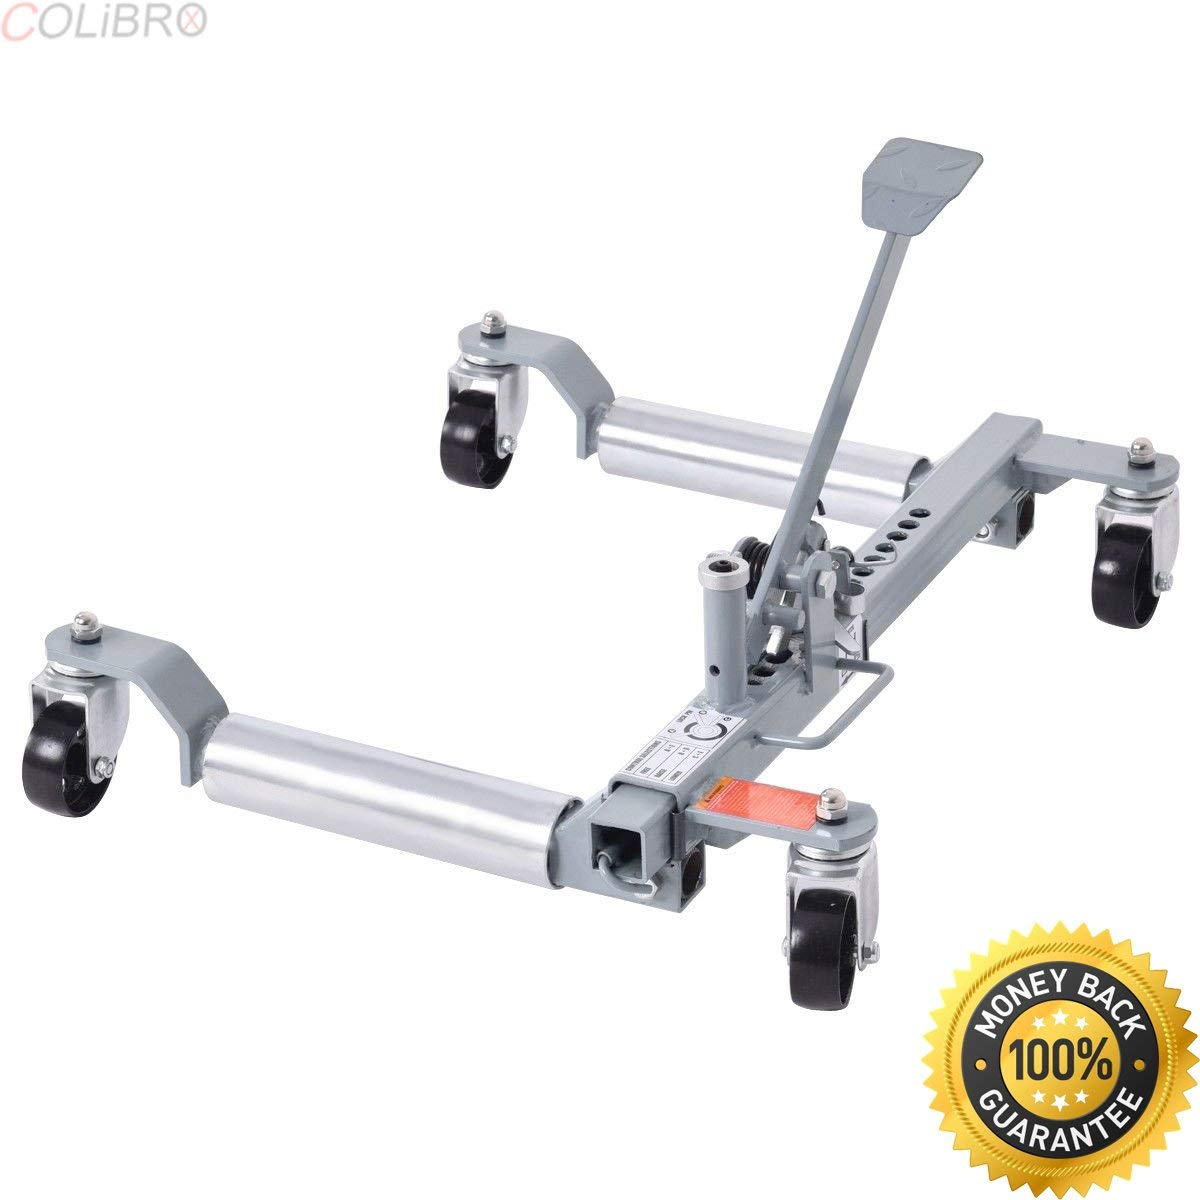 Cheap Car Dolly Set Find Car Dolly Set Deals On Line At Alibaba Com